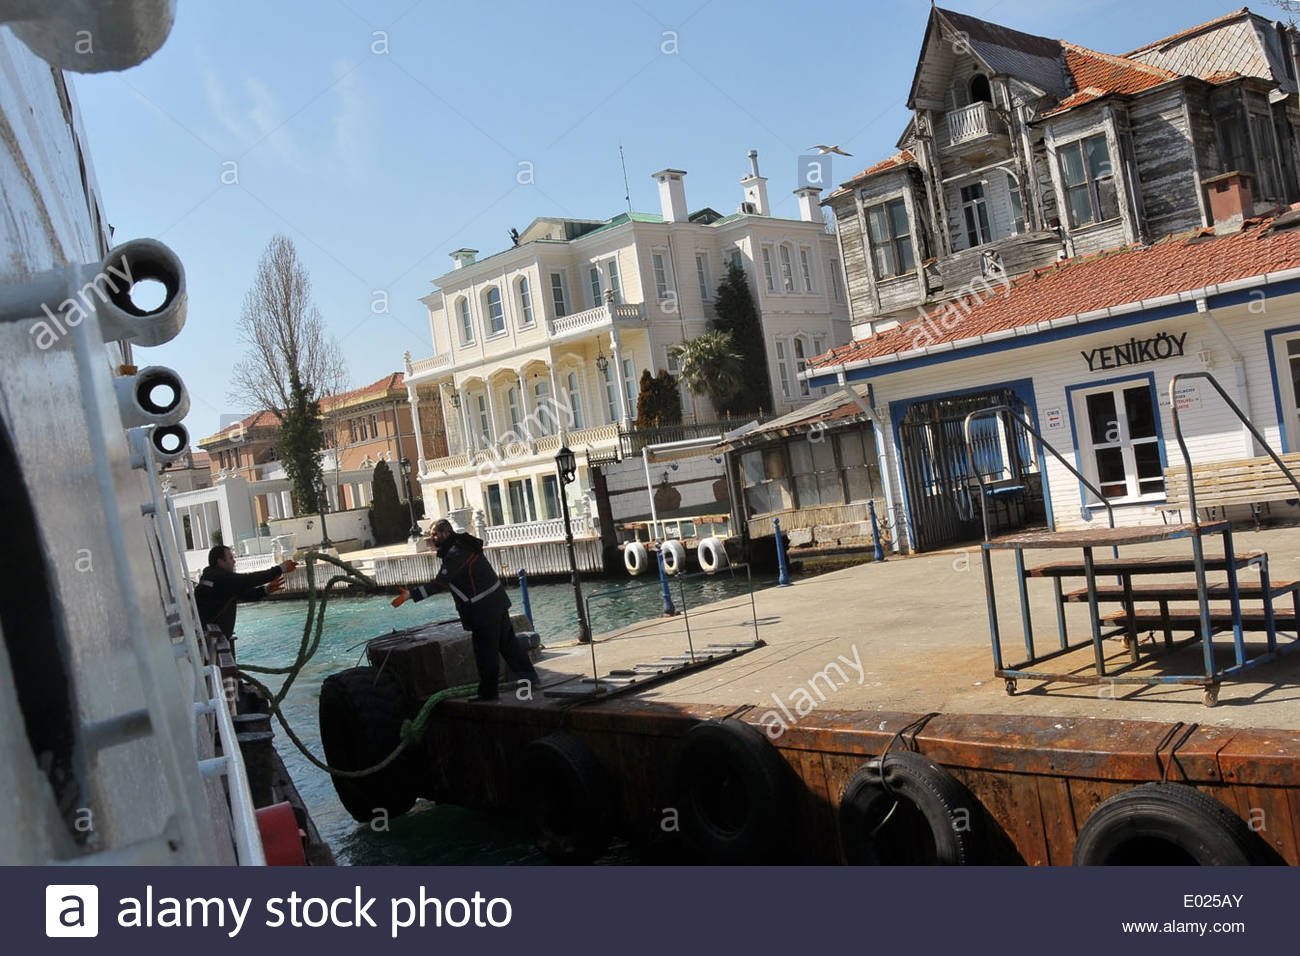 An Istanbul ferry boat is mooring at the ferry station pier in Yeniköy on the European side of the Bosphorus - Stock Image